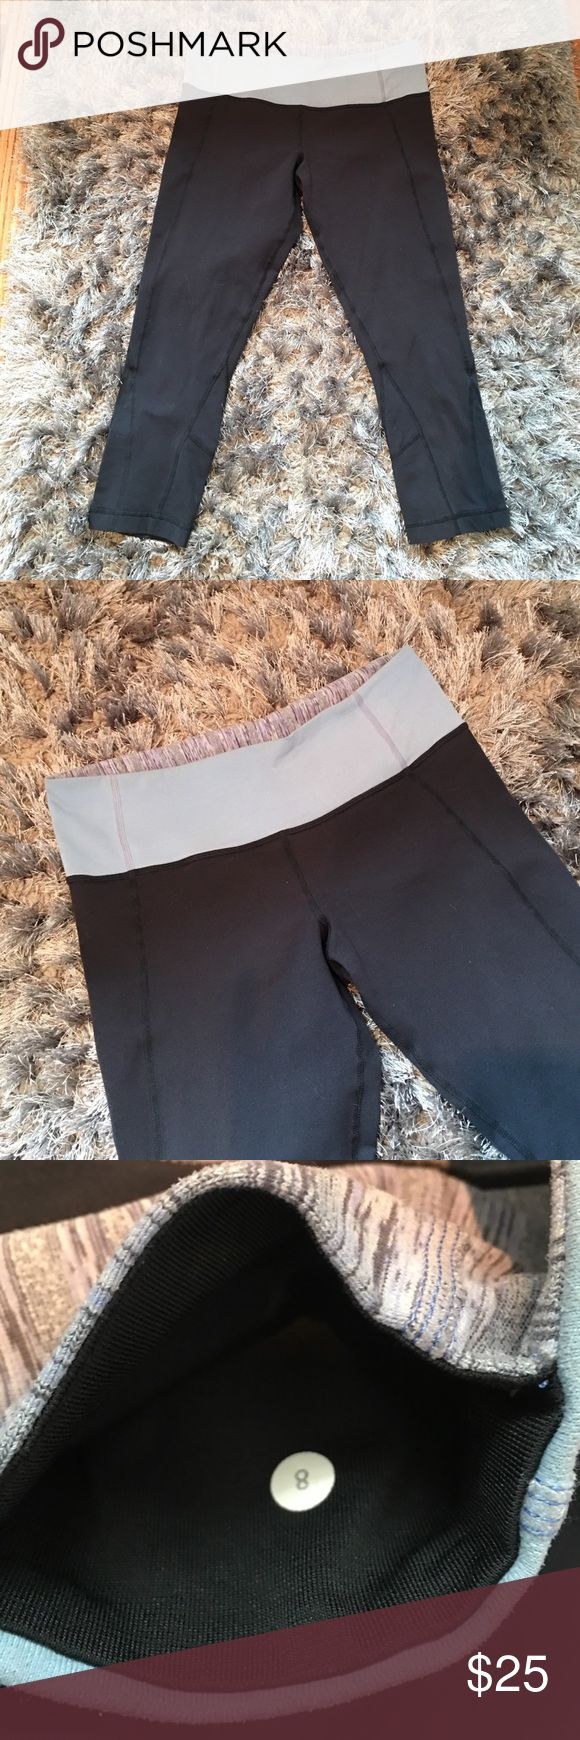 Lululemon Athletica Capris size 8 Worn once Washed Clean Flawless Like new Size 8 Lululemon athletica lululemon athletica Pants Capris